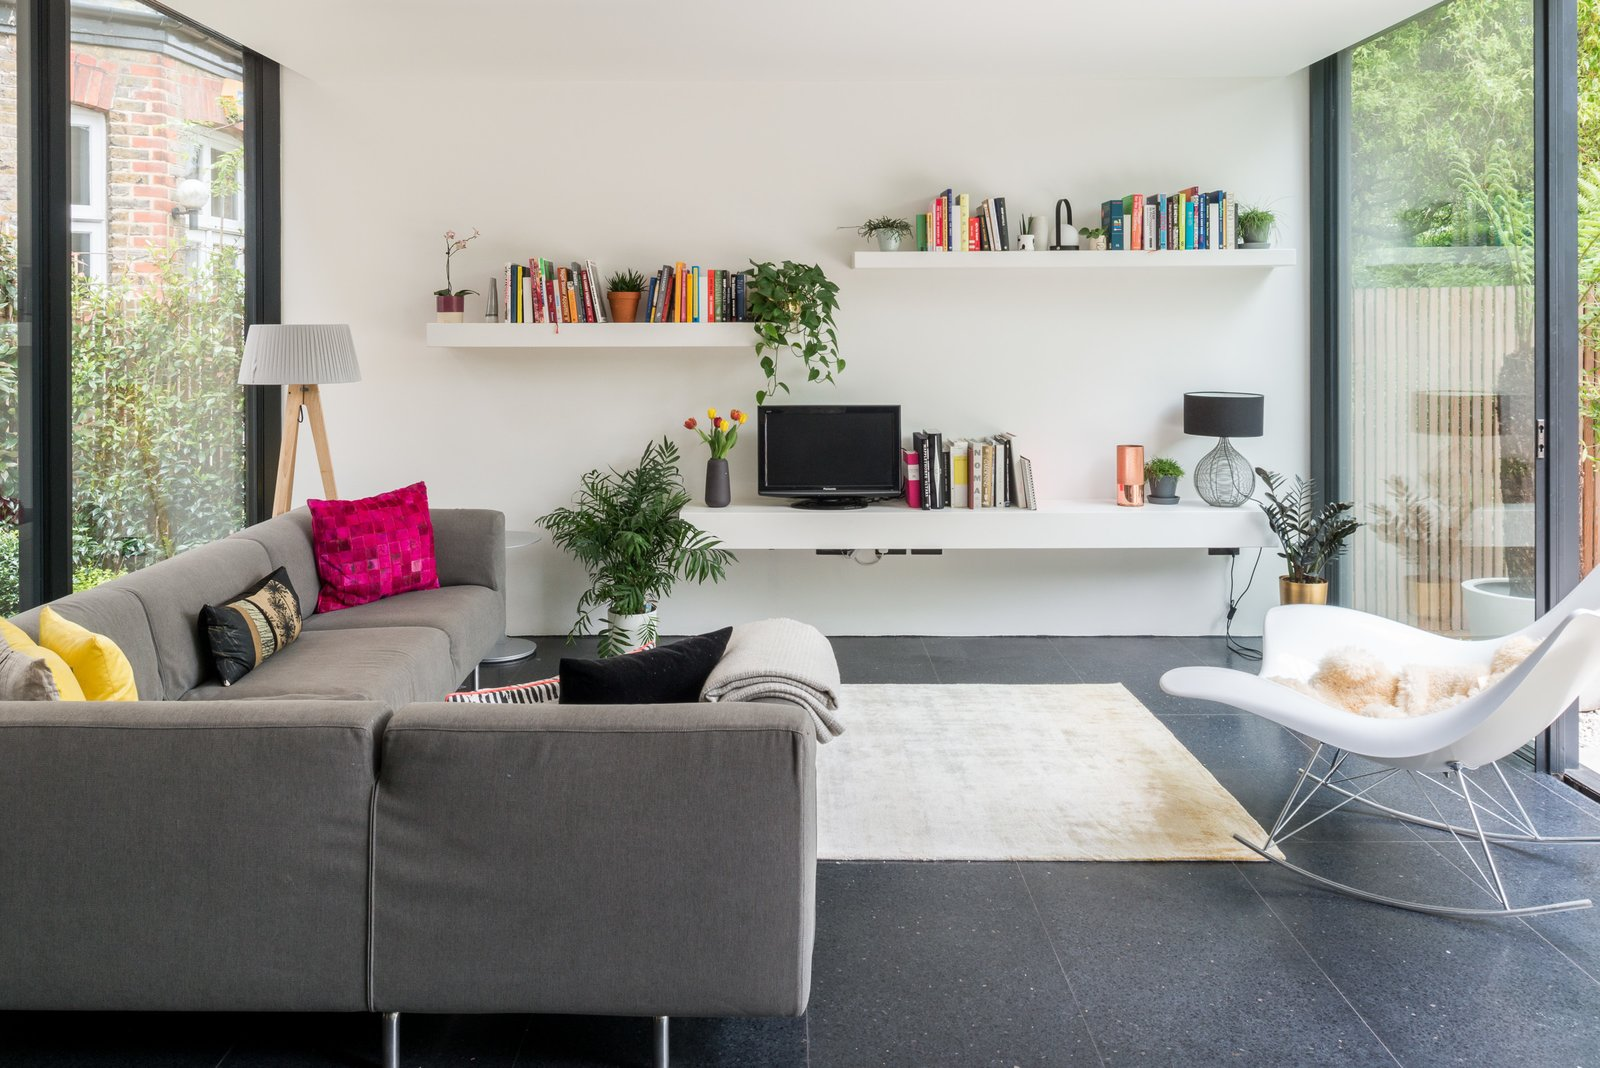 Living Room, Rug Floor, Sectional, Terrazzo Floor, Shelves, Chair, Table Lighting, and Floor Lighting The living room is bright and airy thanks to floor-to-ceiling glazing and a crisp white wall.     Photos from A Swoon-Worthy London Apartment Is Listed For £1.8M